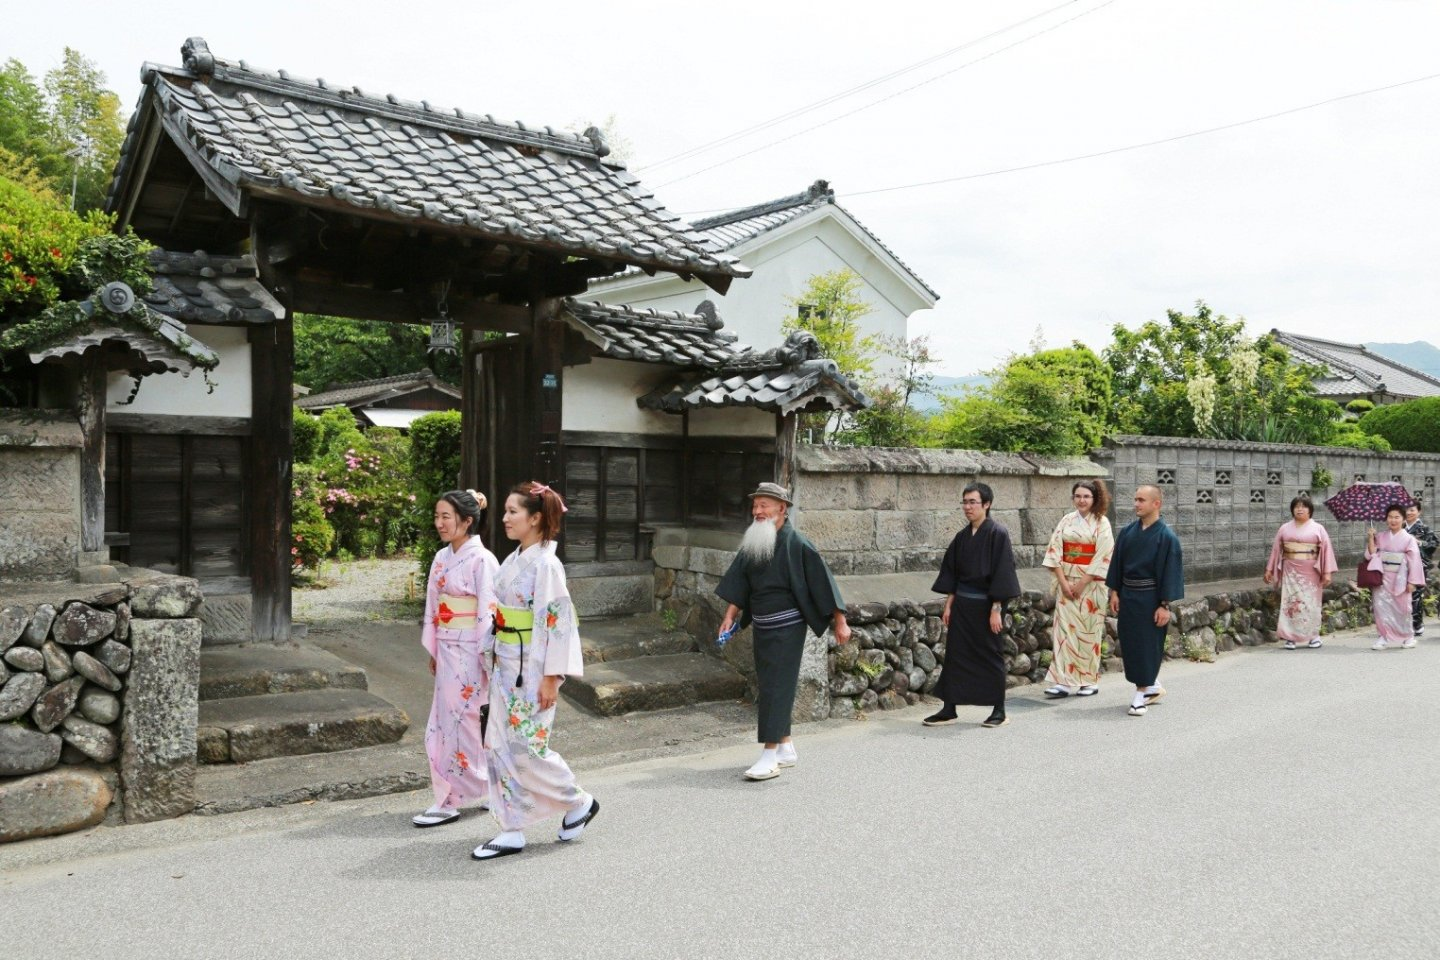 Strolling around in the streets between samurai residences